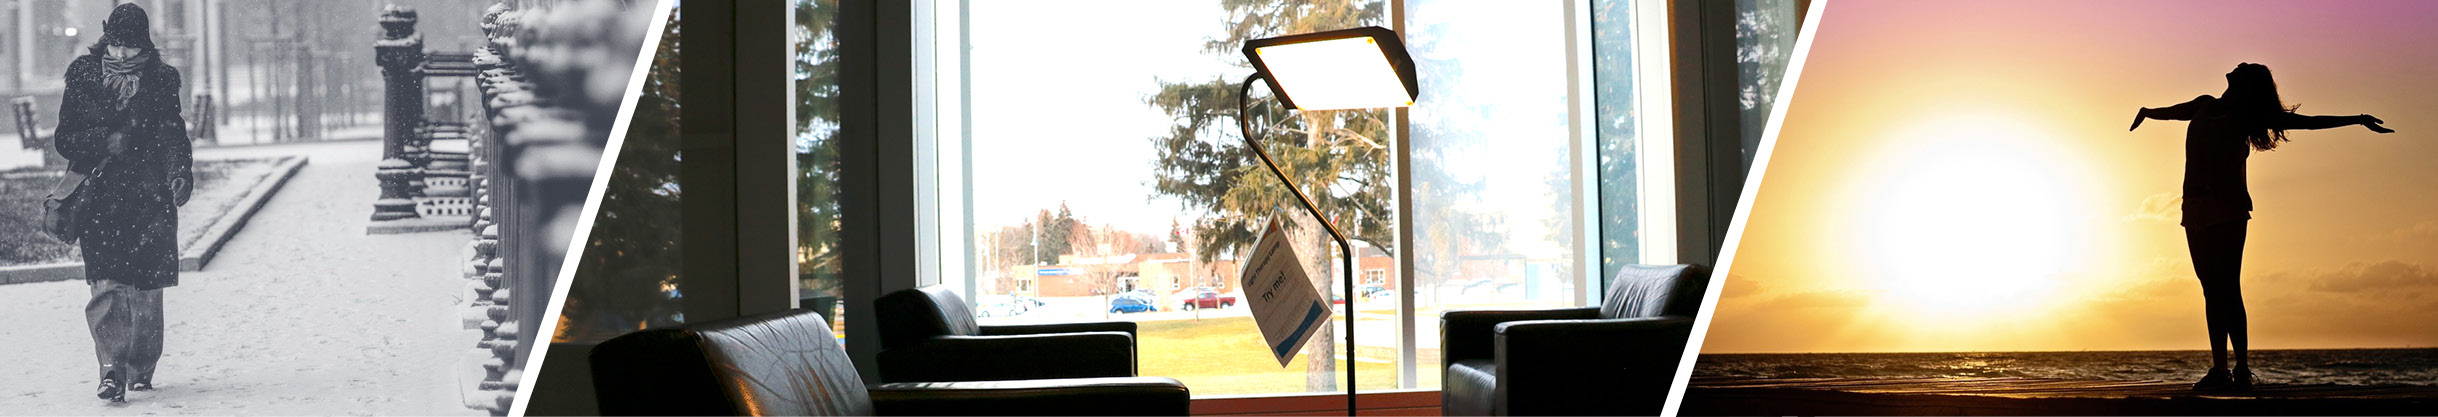 banner image showing light therapy lamps available at Burlington Public Library